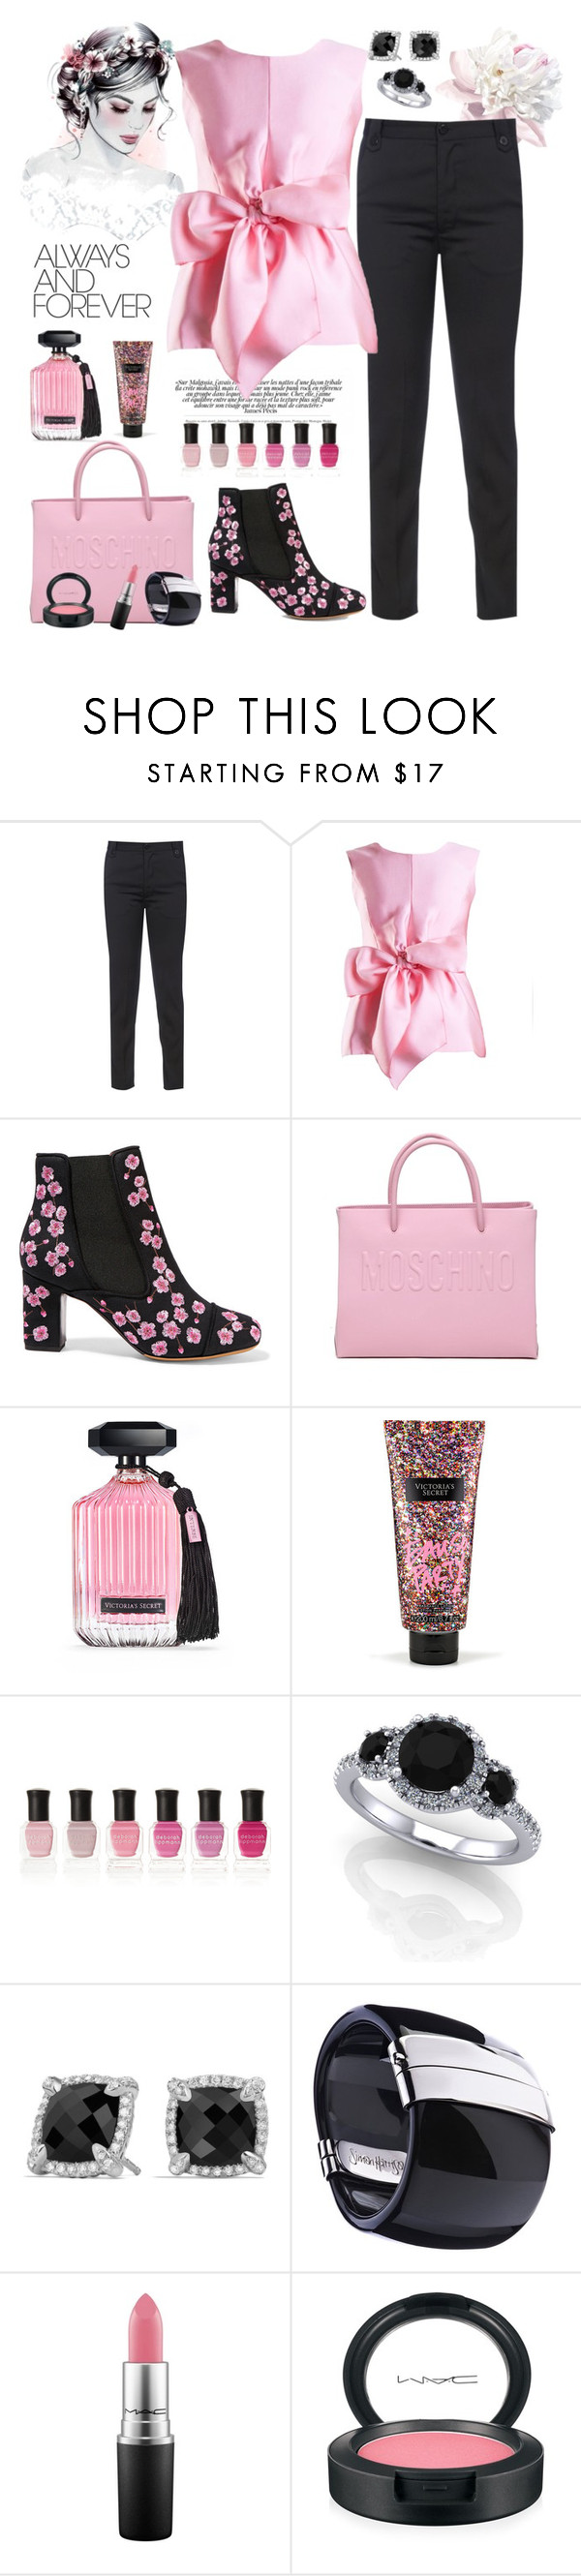 """Pink and Black"" by puppylove7 ❤ liked on Polyvore featuring Yanny London, Tabitha Simmons, Moschino, Victoria's Secret, Deborah Lippmann, David Yurman and MAC Cosmetics"